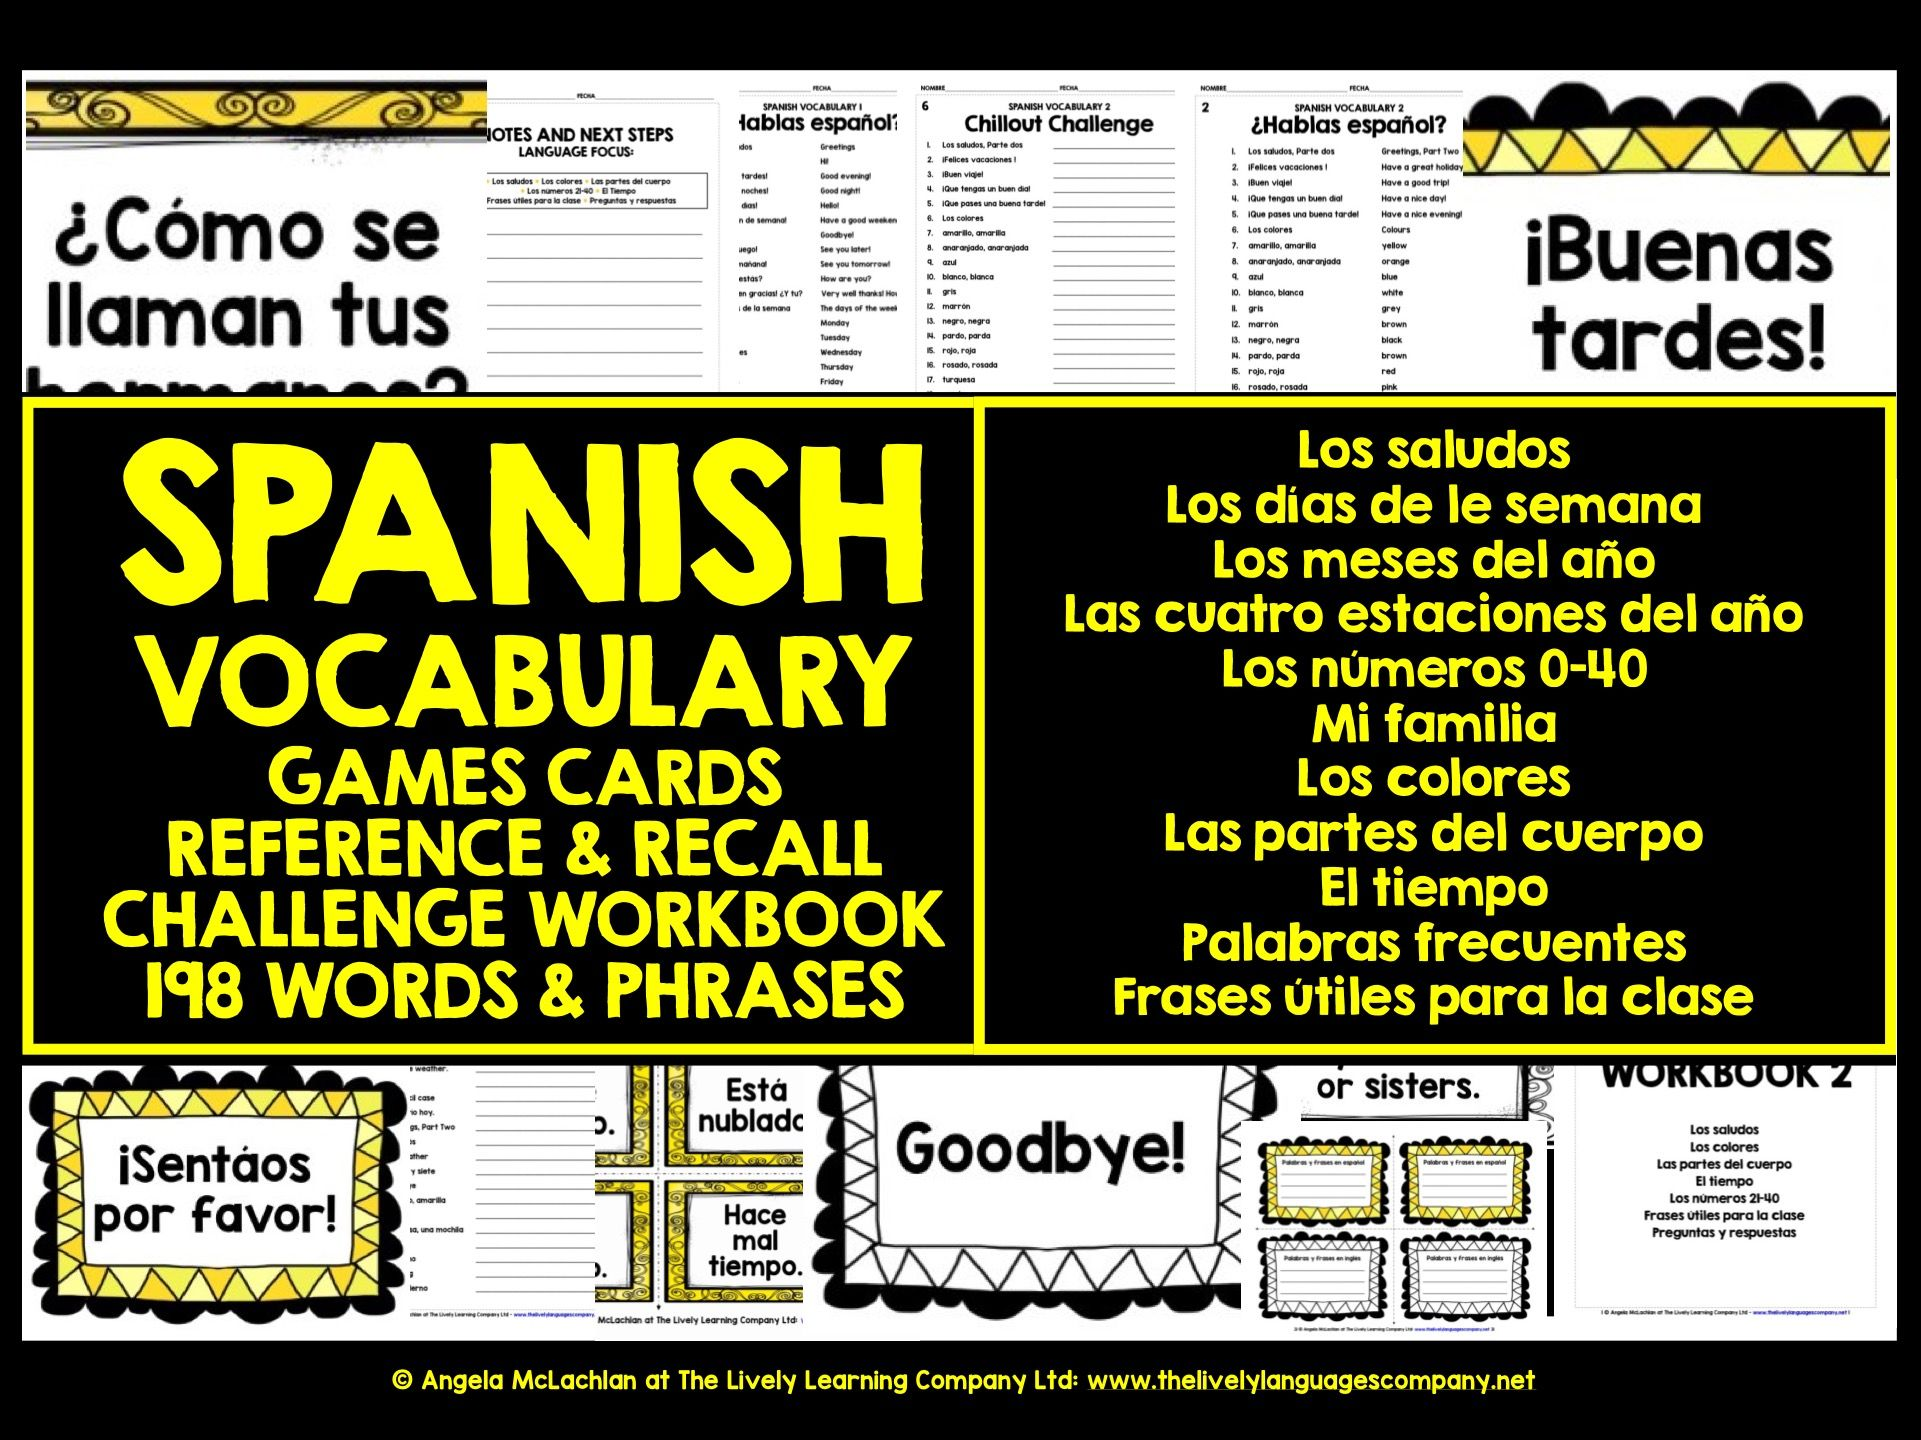 SPANISH VOCABULARY CARDS